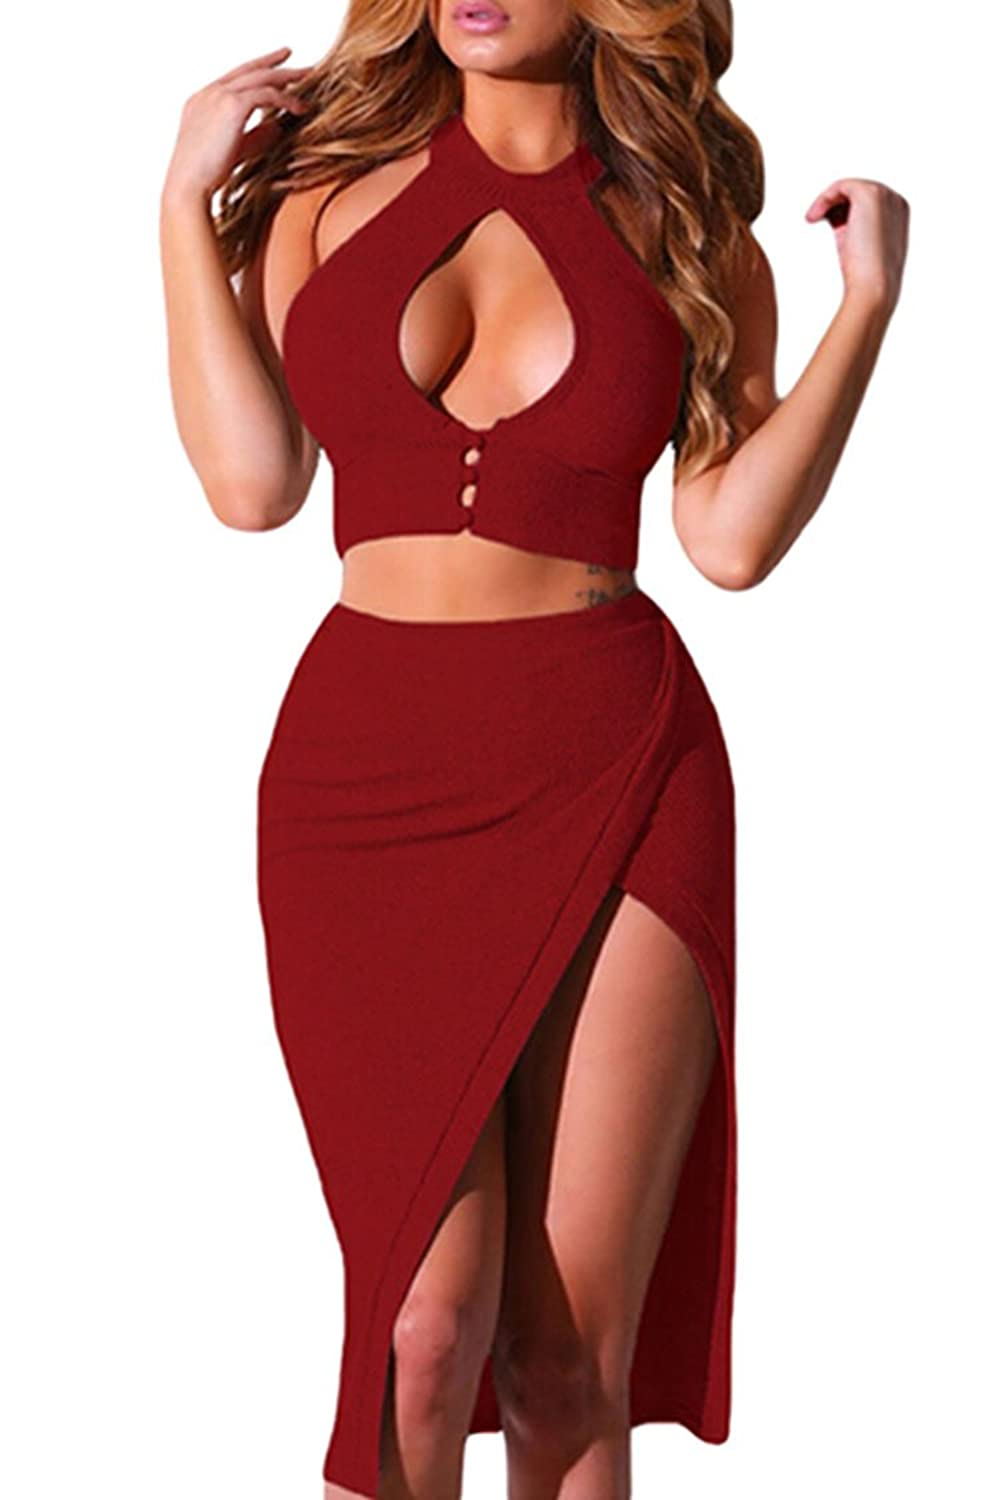 Merry21 Women's Two Piece Buttoned Cut Out Crop Top Midi Slit Skirt Dress Outfit